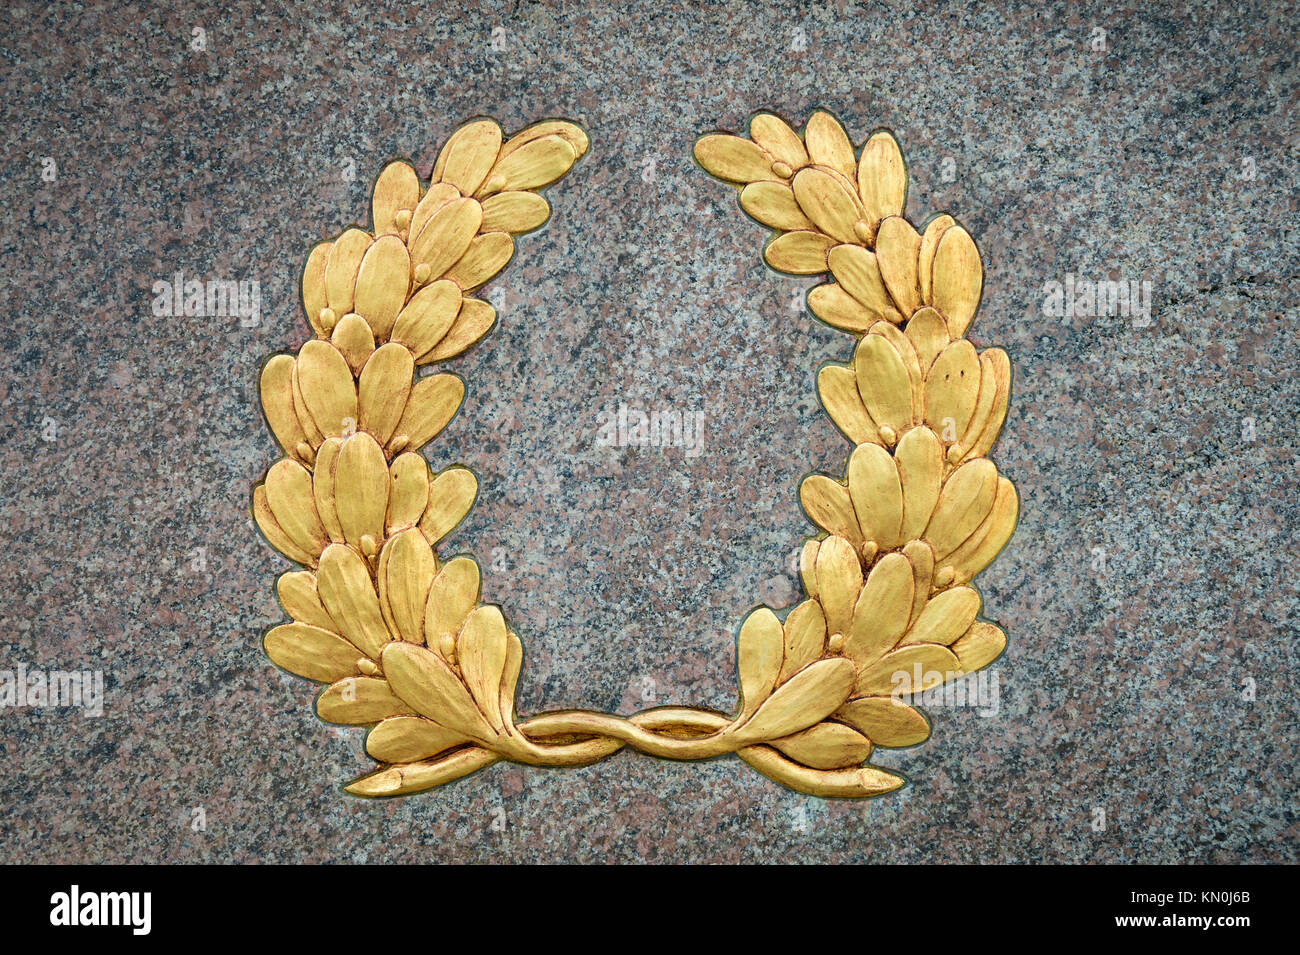 Classic laurel wreath symbol with vintage gold leaf detail on textured raised relief against a smooth gray stone - Stock Image